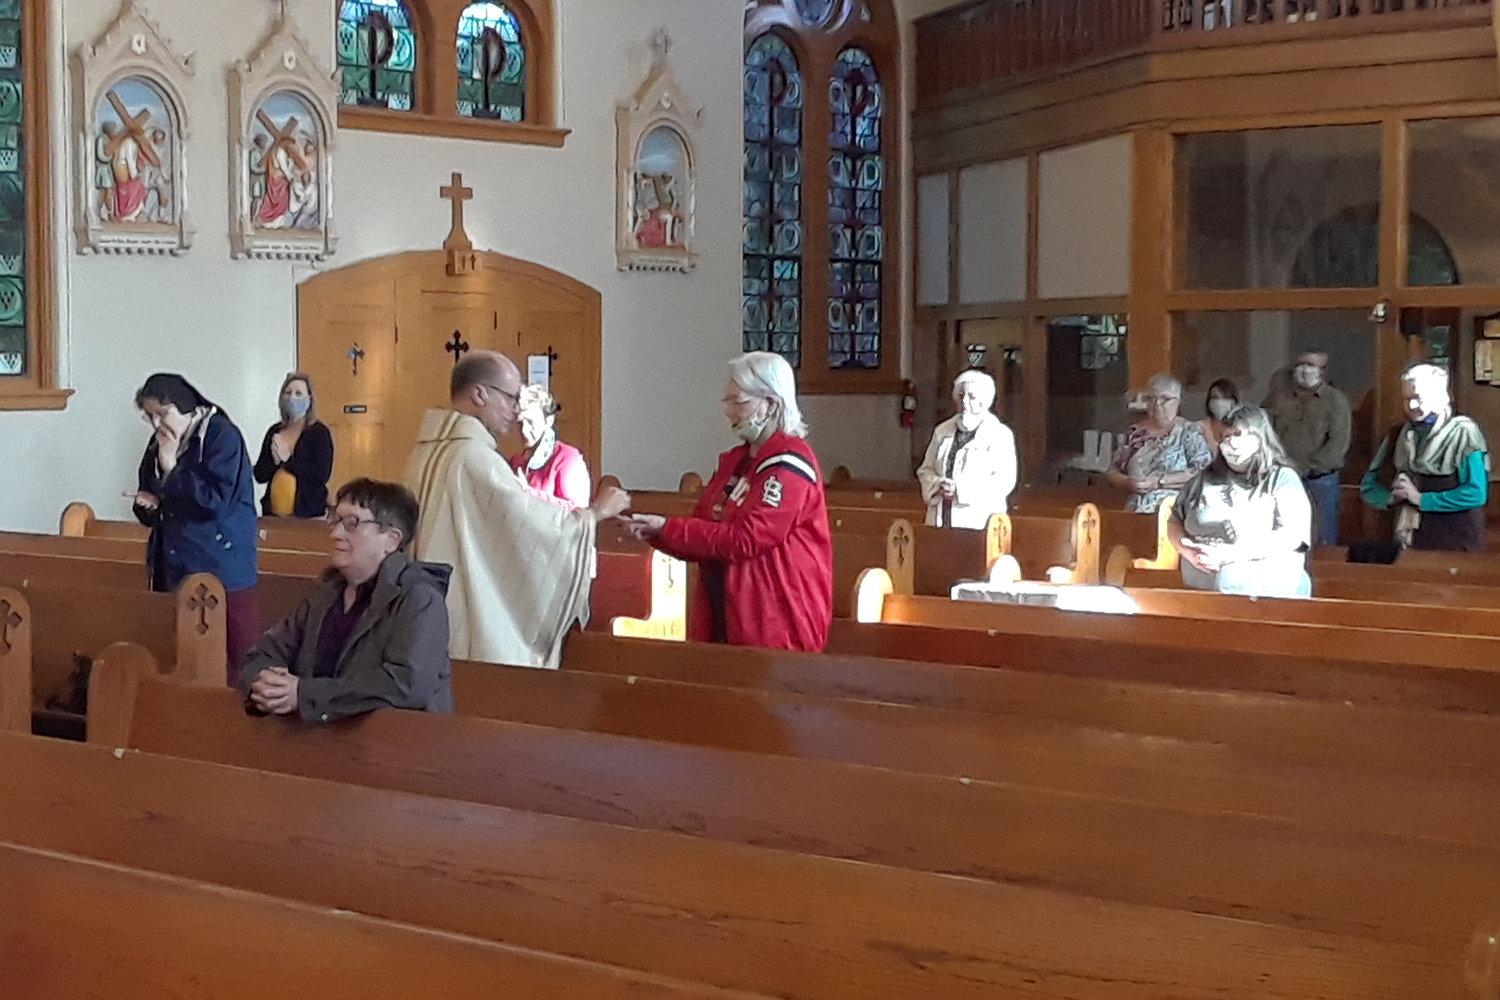 Father William Debo, pastor of Holy Family parish in Freeburg and Sacred Heart parish in Rich Fountain, distributes Holy Communion during Mass on Wednesday, May 6, in Holy Family Church. It was the first publicly celebrated Mass in the Church in seven weeks.